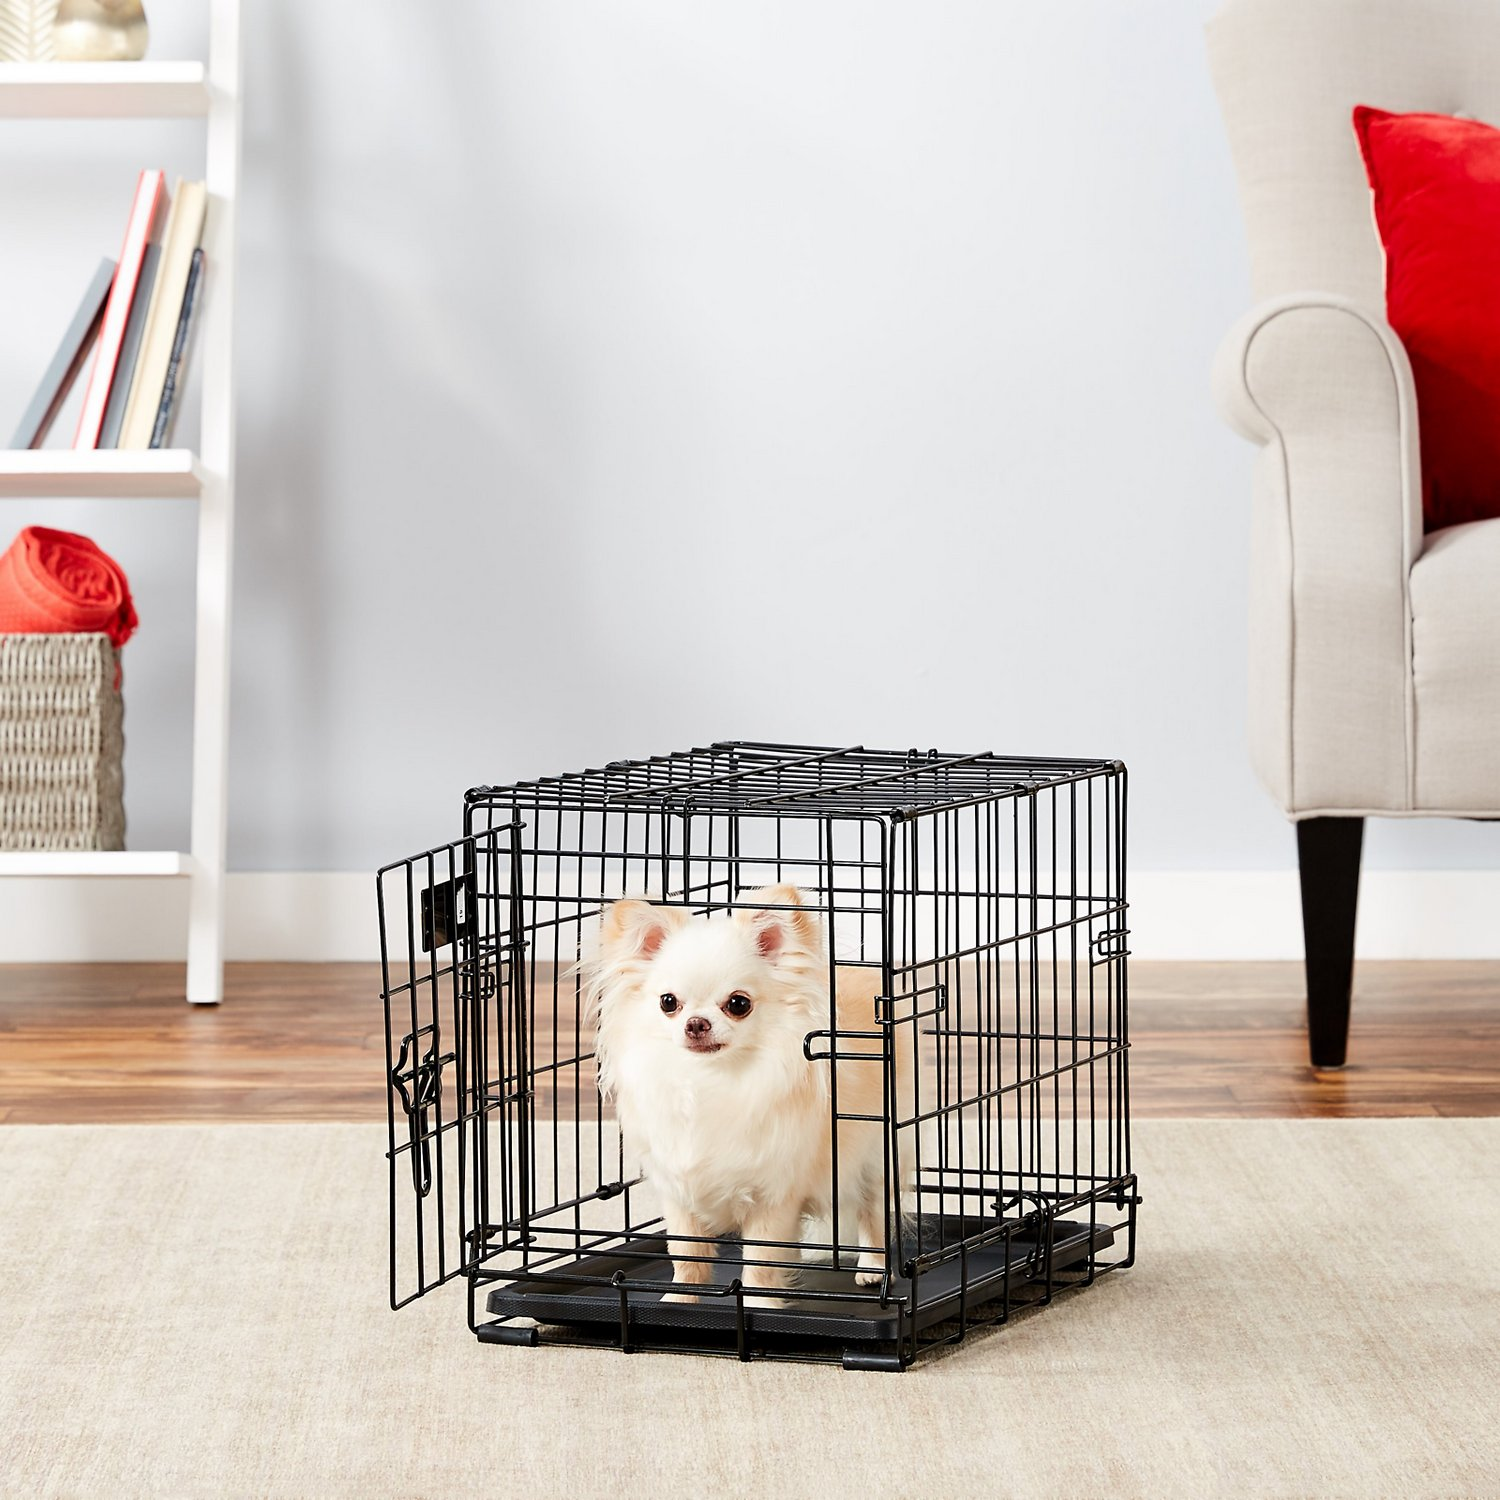 Astounding Midwest Icrate Single Door Fold Carry Dog Crate 18 In Machost Co Dining Chair Design Ideas Machostcouk